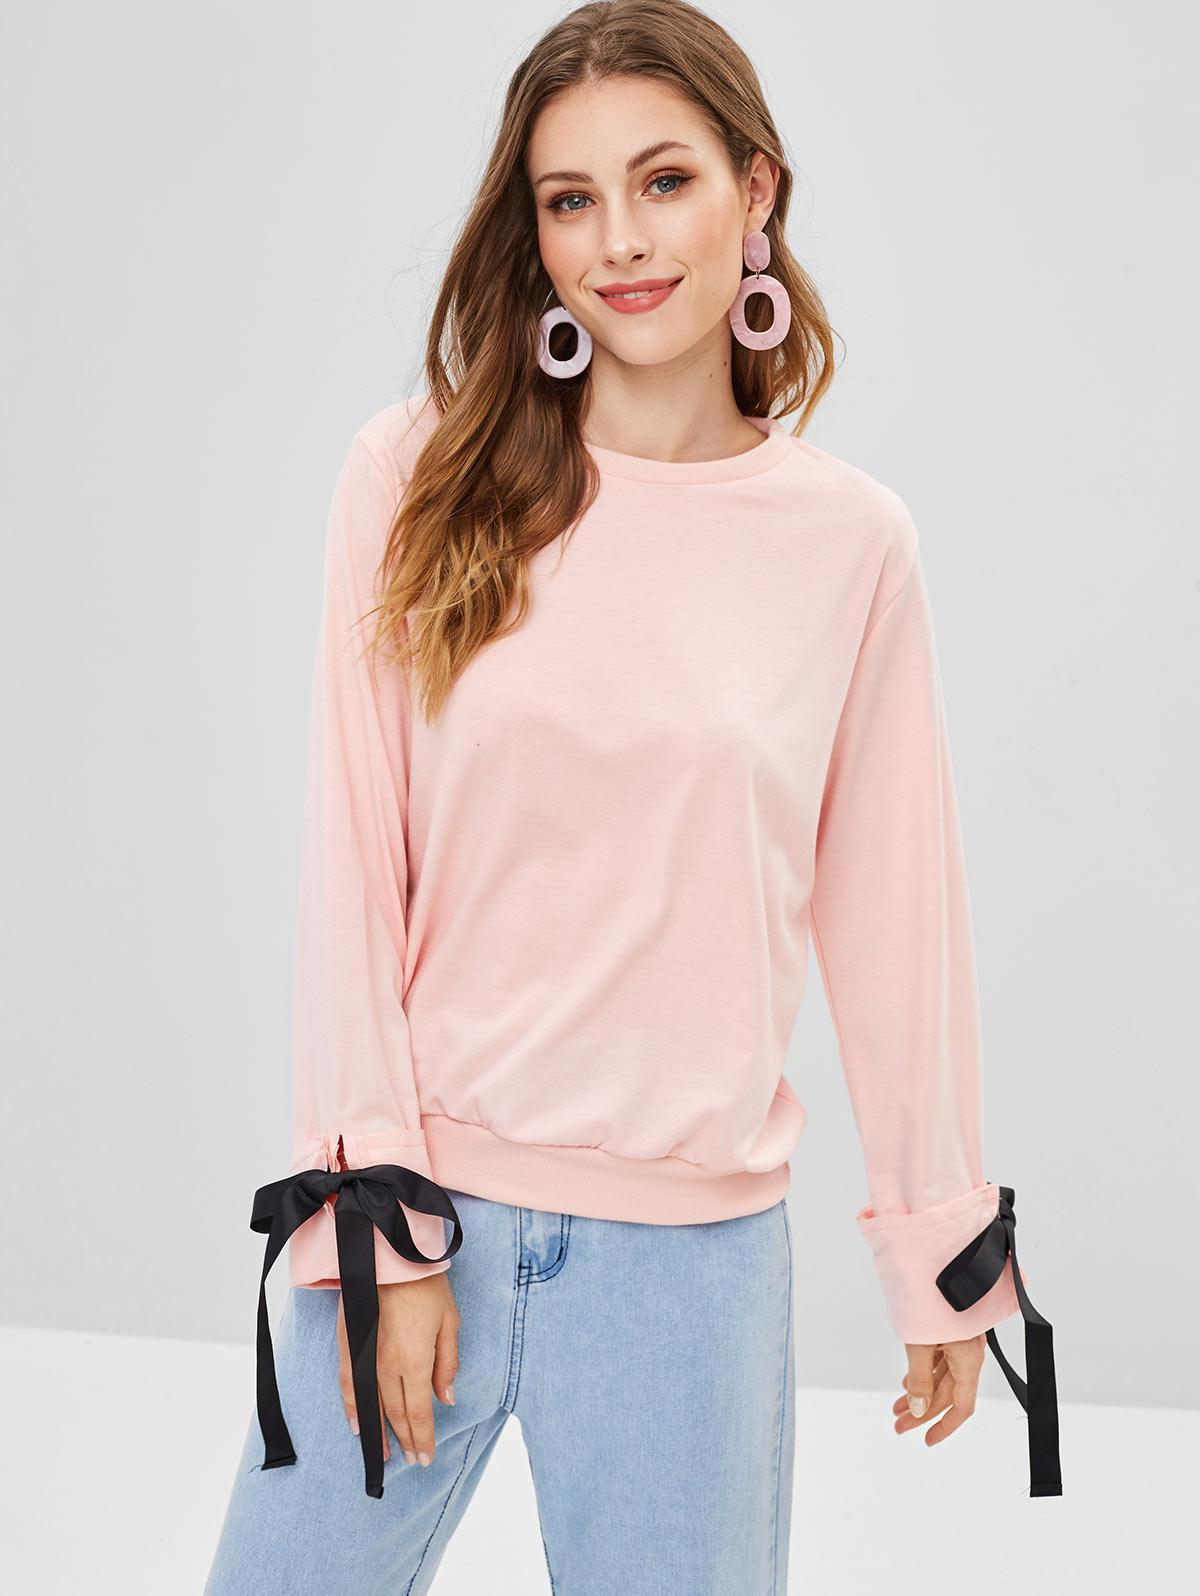 Knotted Cuffed Sleeves Sweatshirt